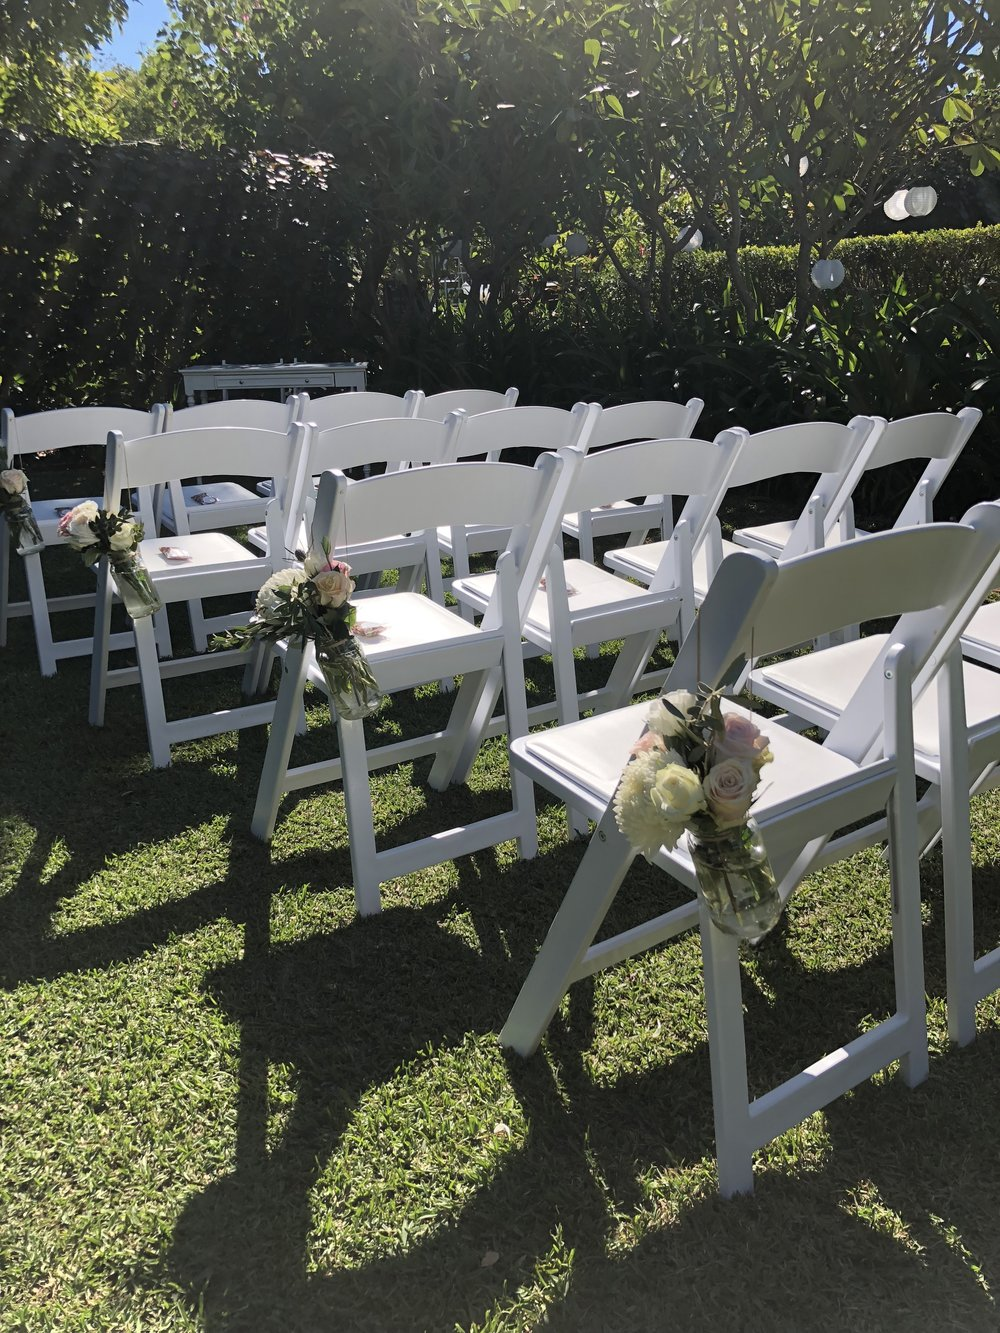 Ceremony chairs:$10 each - 40 available